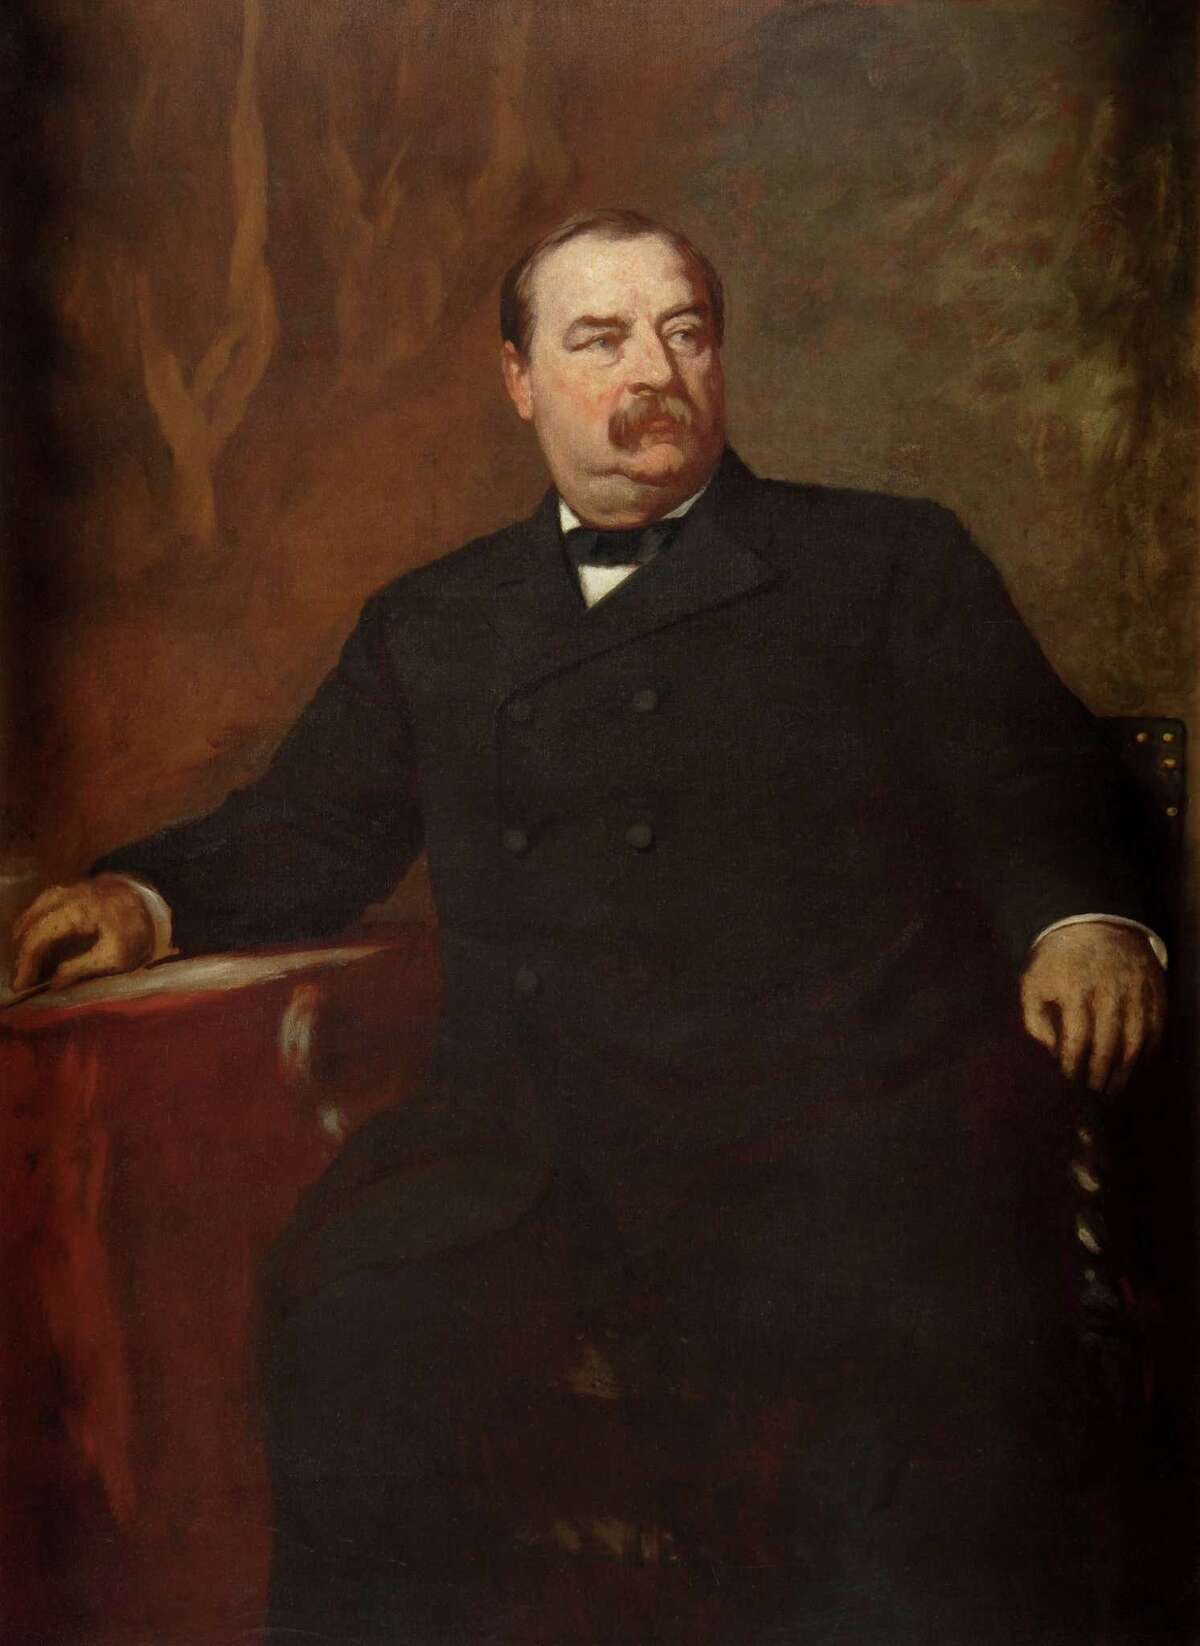 Grover Cleveland Height: 5'11